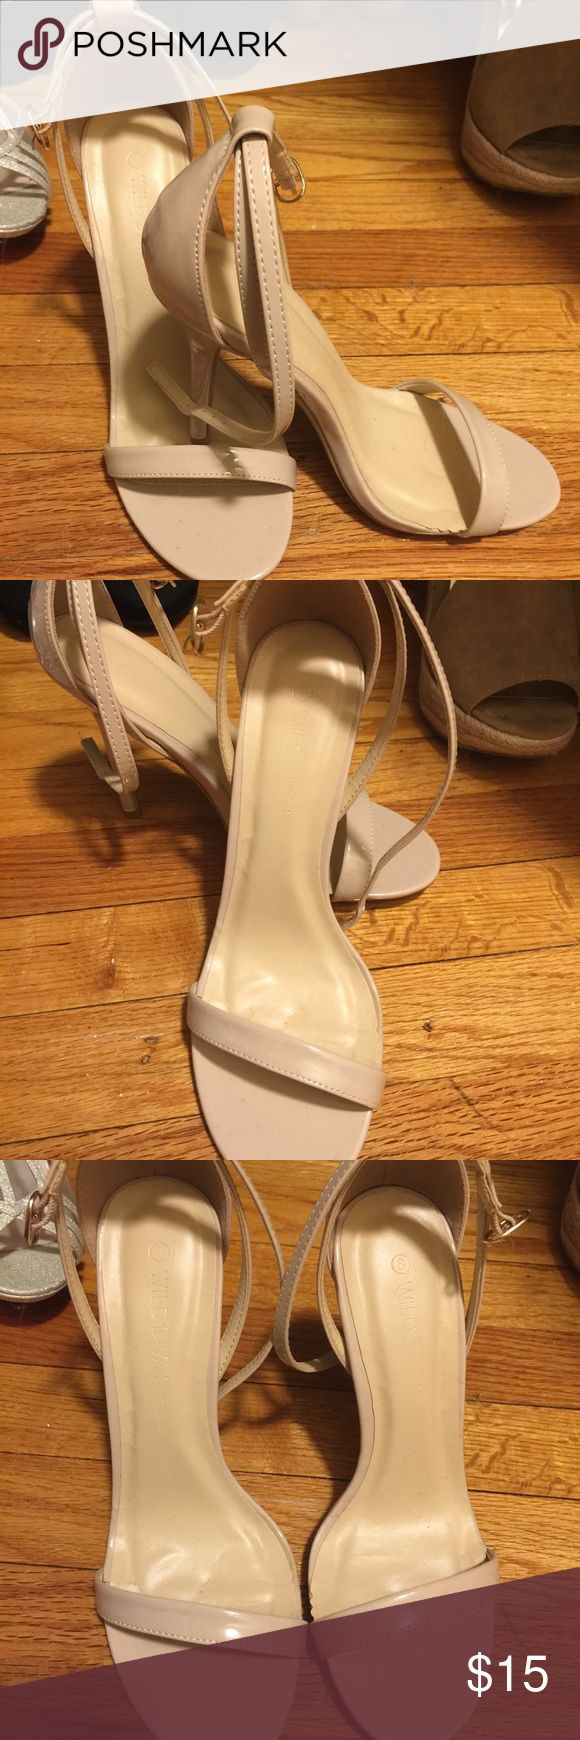 Beige strappy heels Worn once for a rehearsal dinner amazing condition 💃🏻👠😍👍🏻 Charlotte Russe Shoes Heels